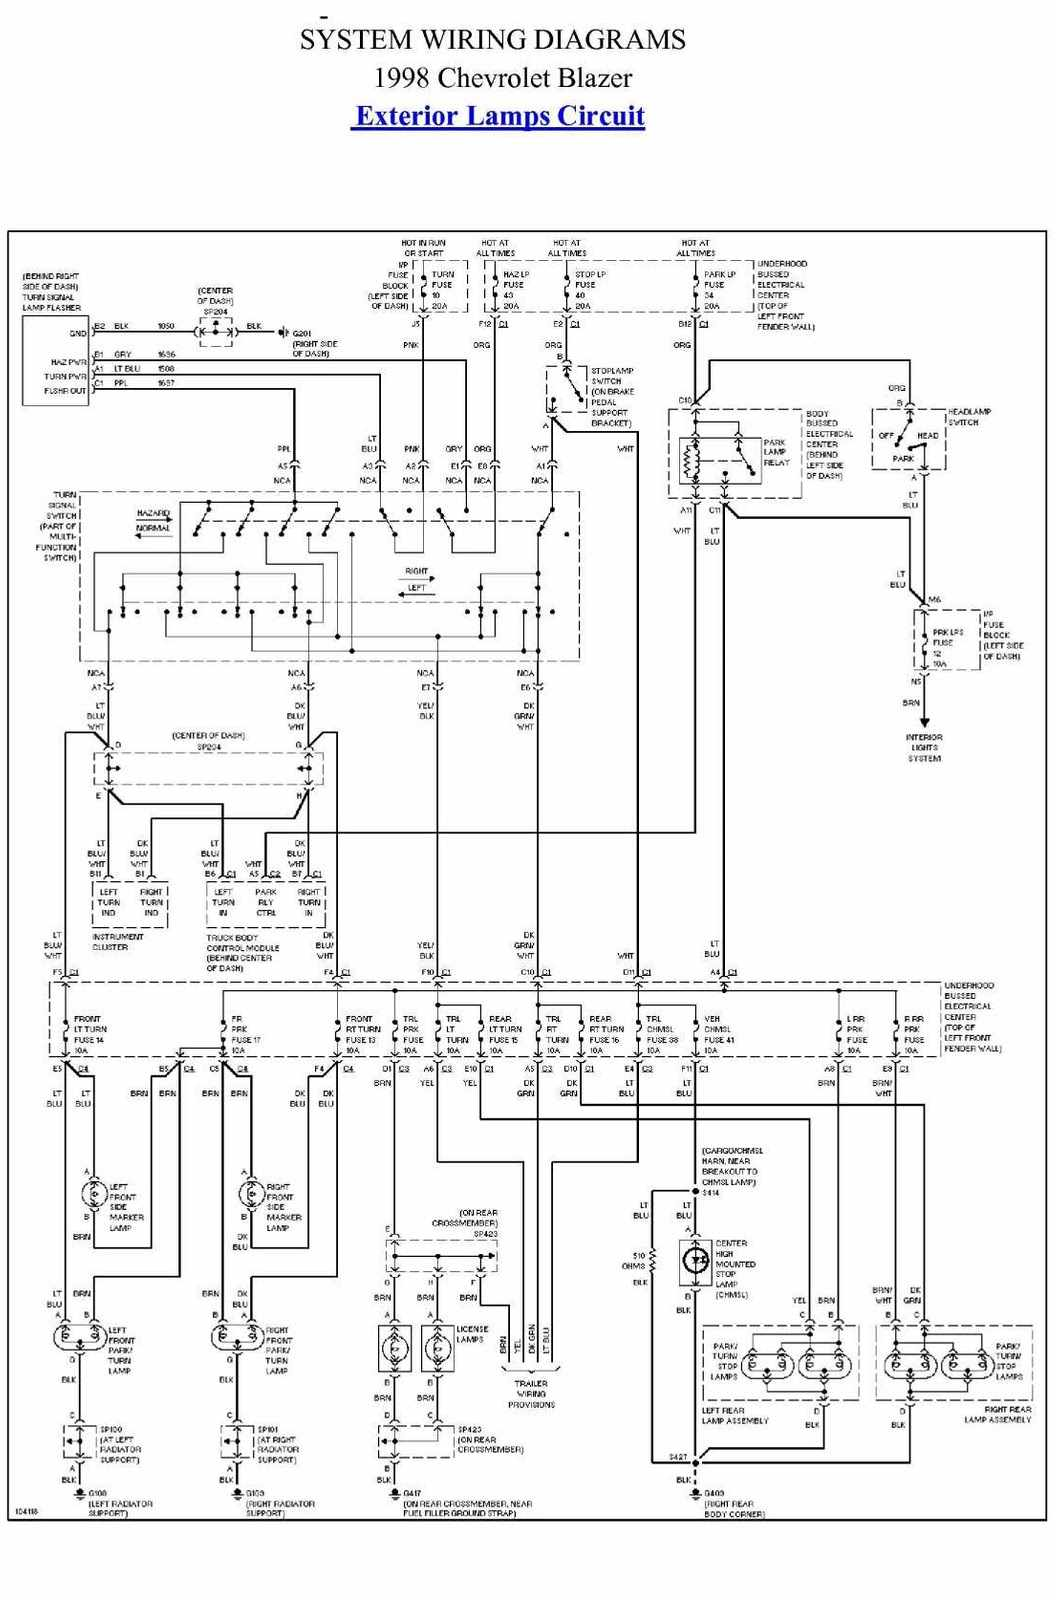 small resolution of exterior lamp circuit diagram of 1998 chevrolet blazer